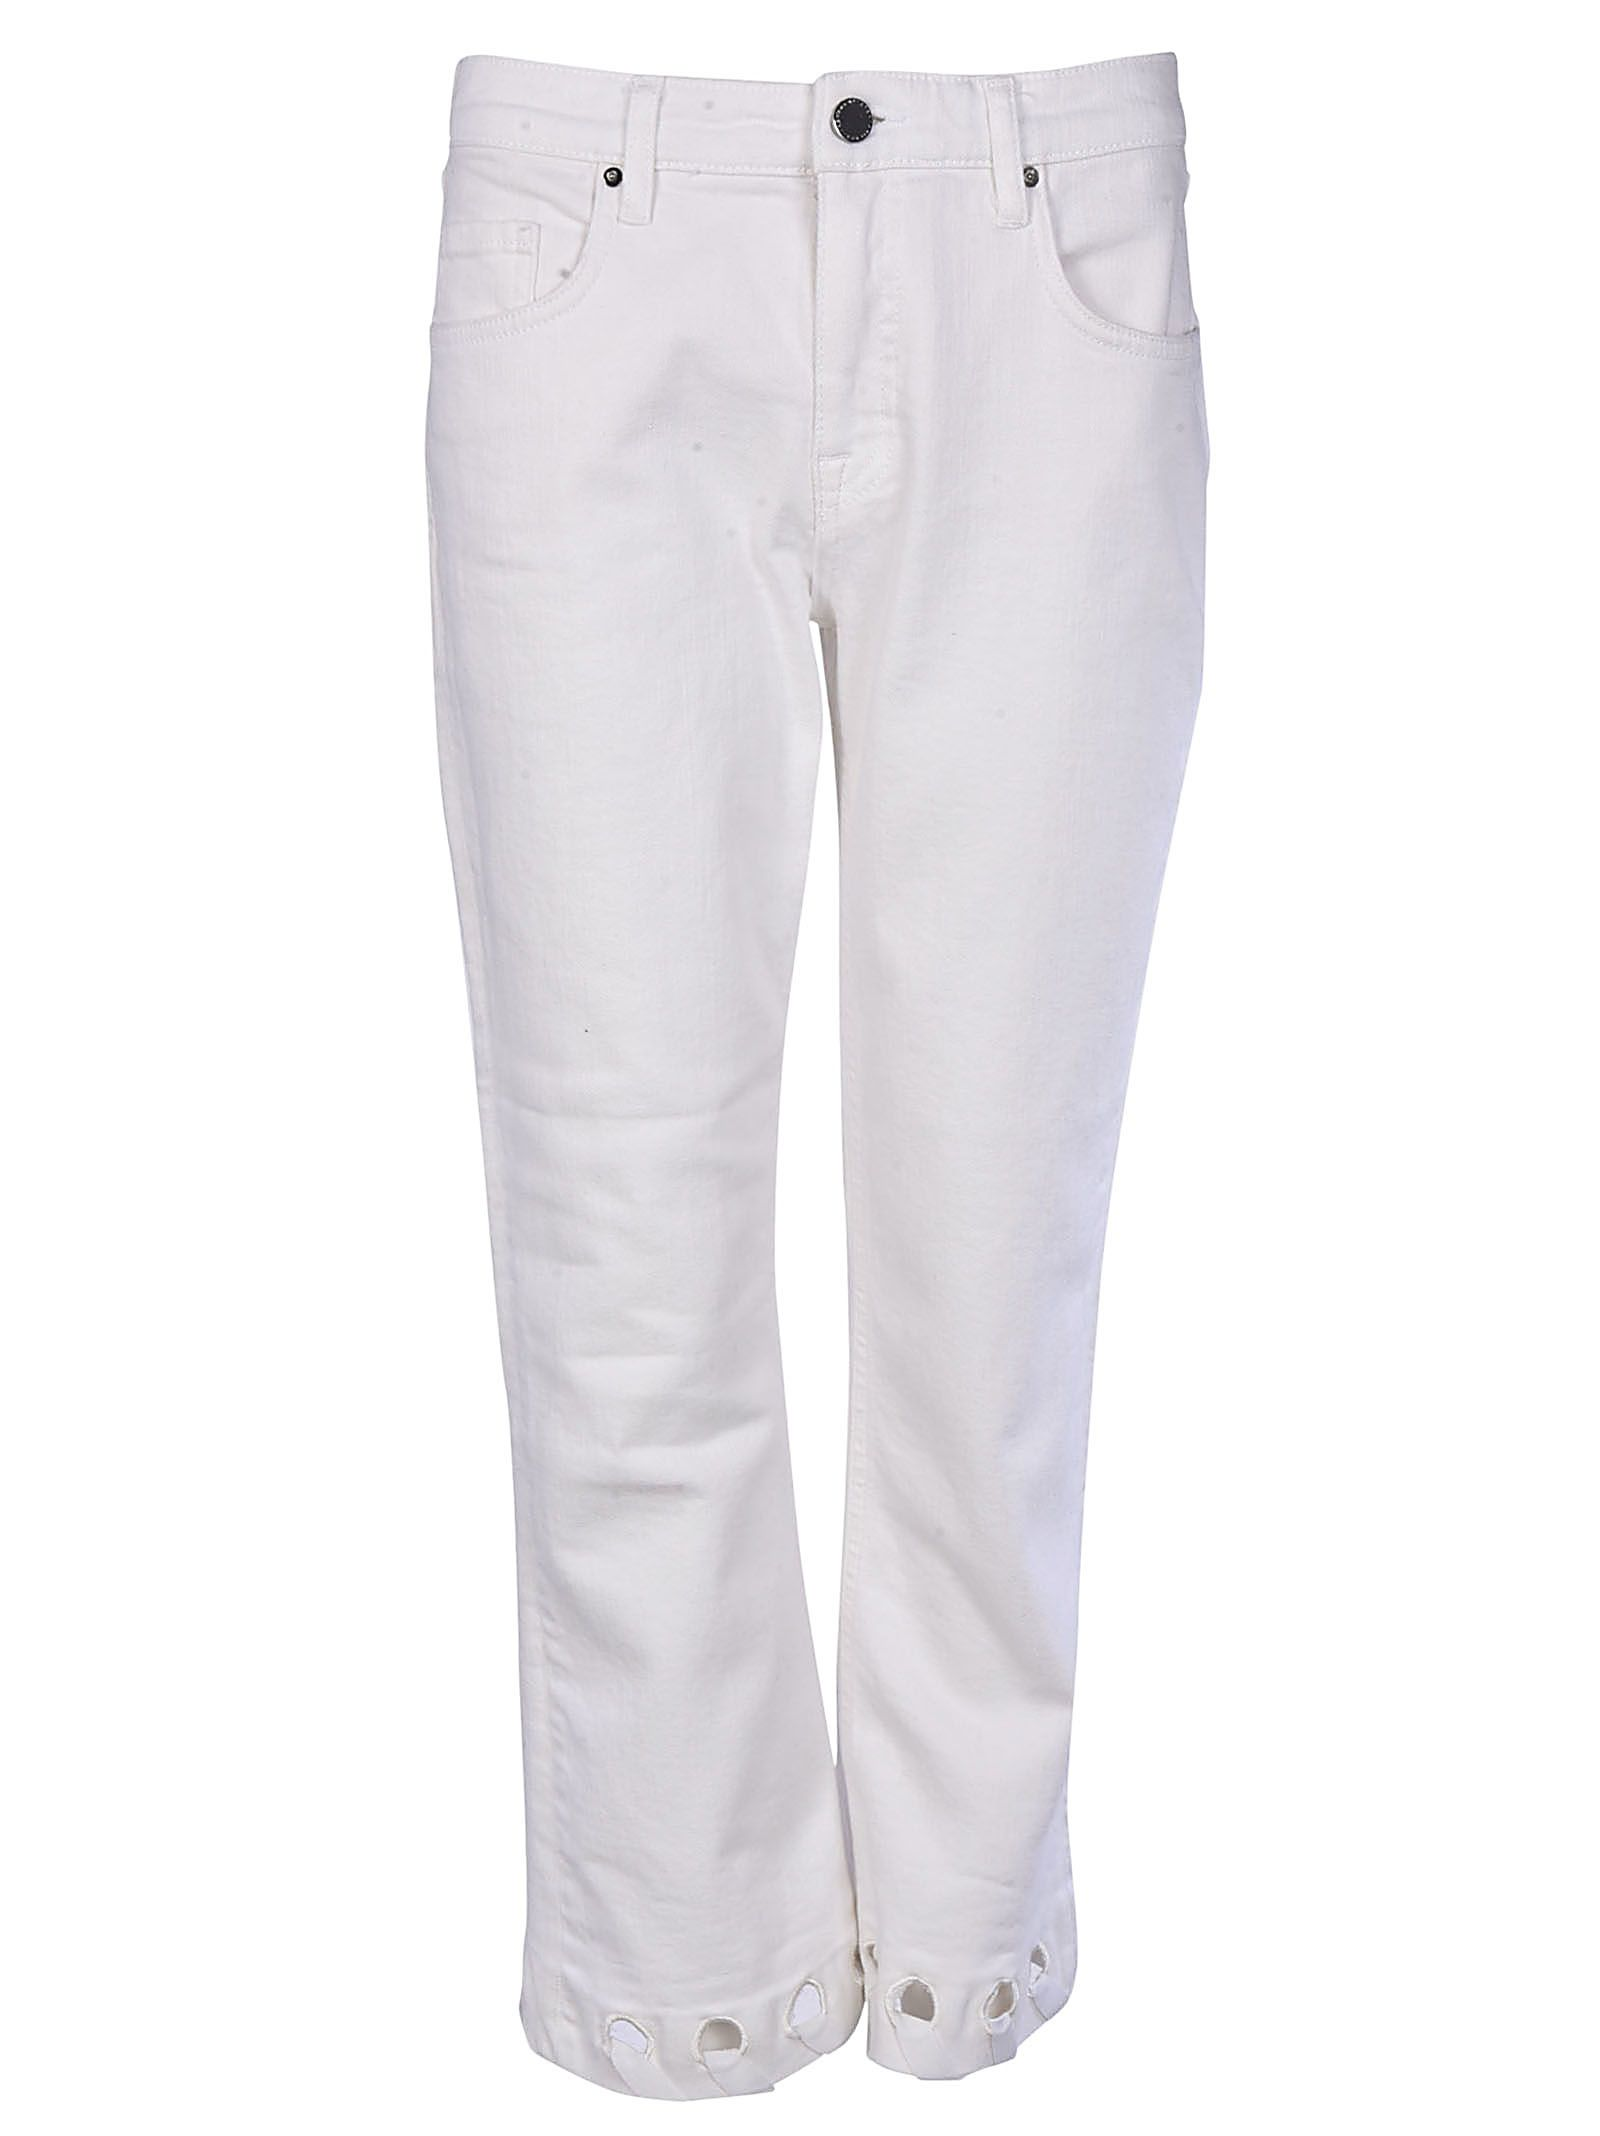 Victoria Victoria Beckham Cut Out Detail Cropped Jeans